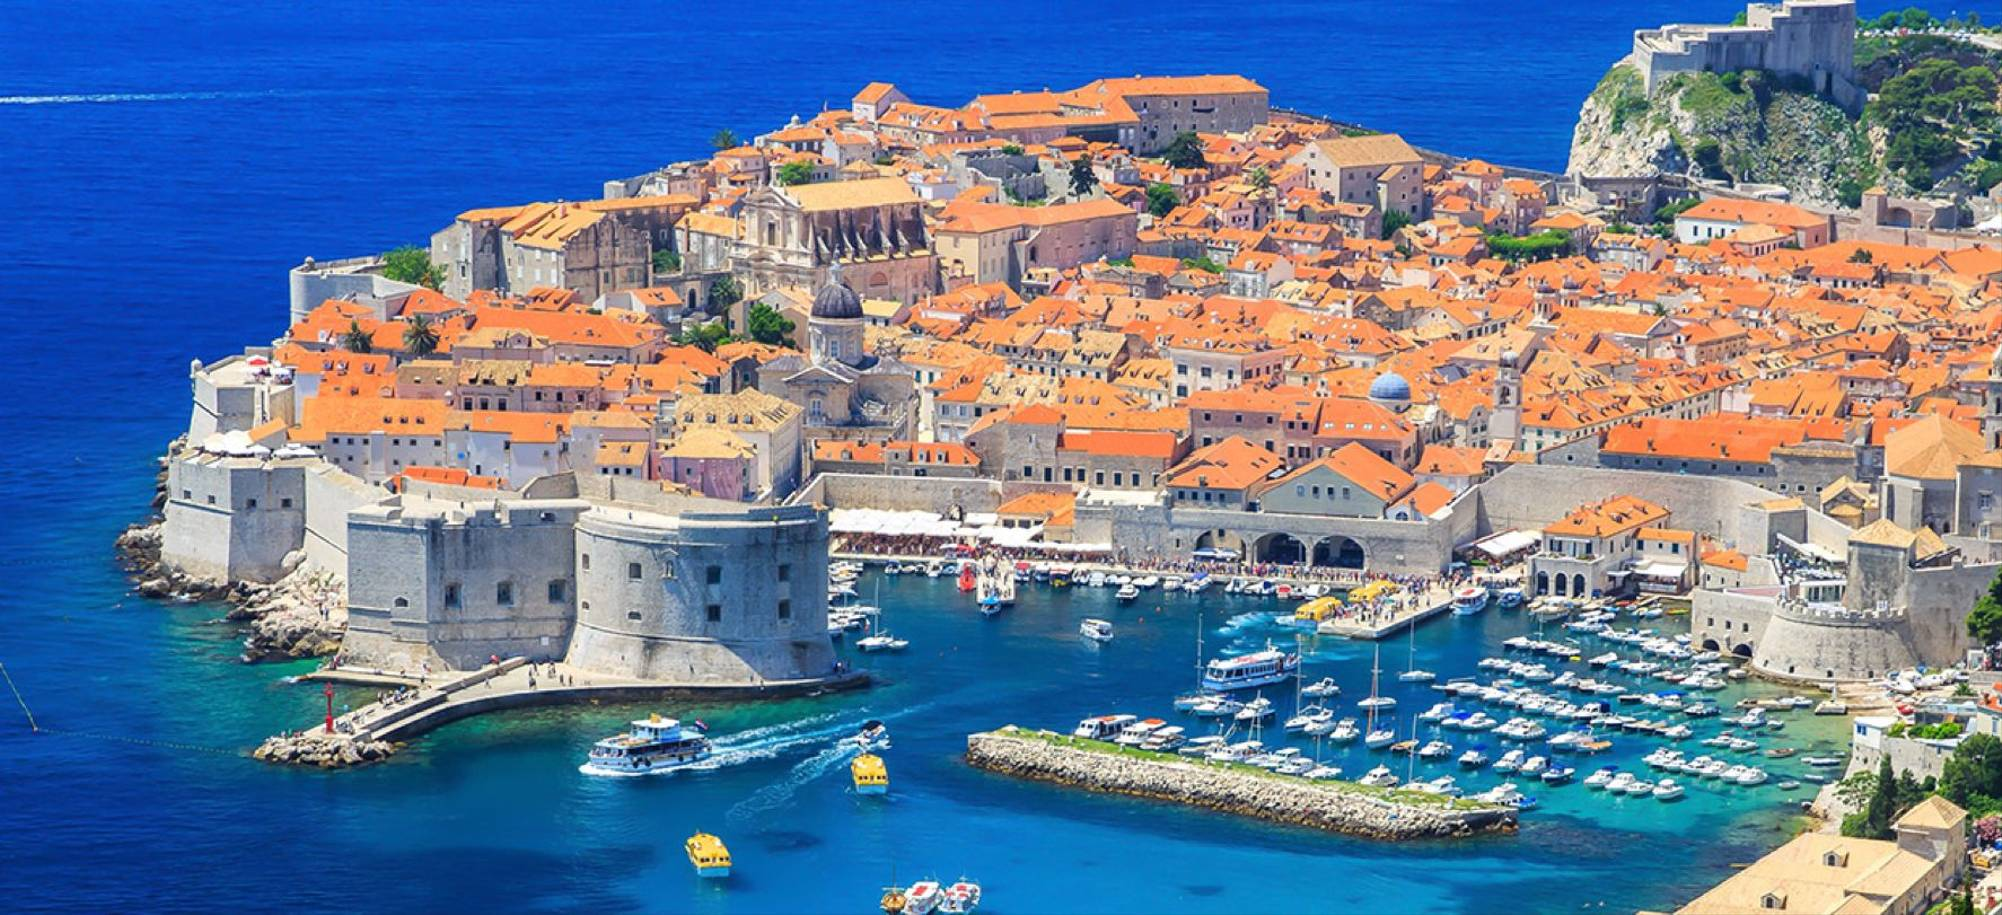 Dubrovnik   City Coastline   Itinerary Desktop